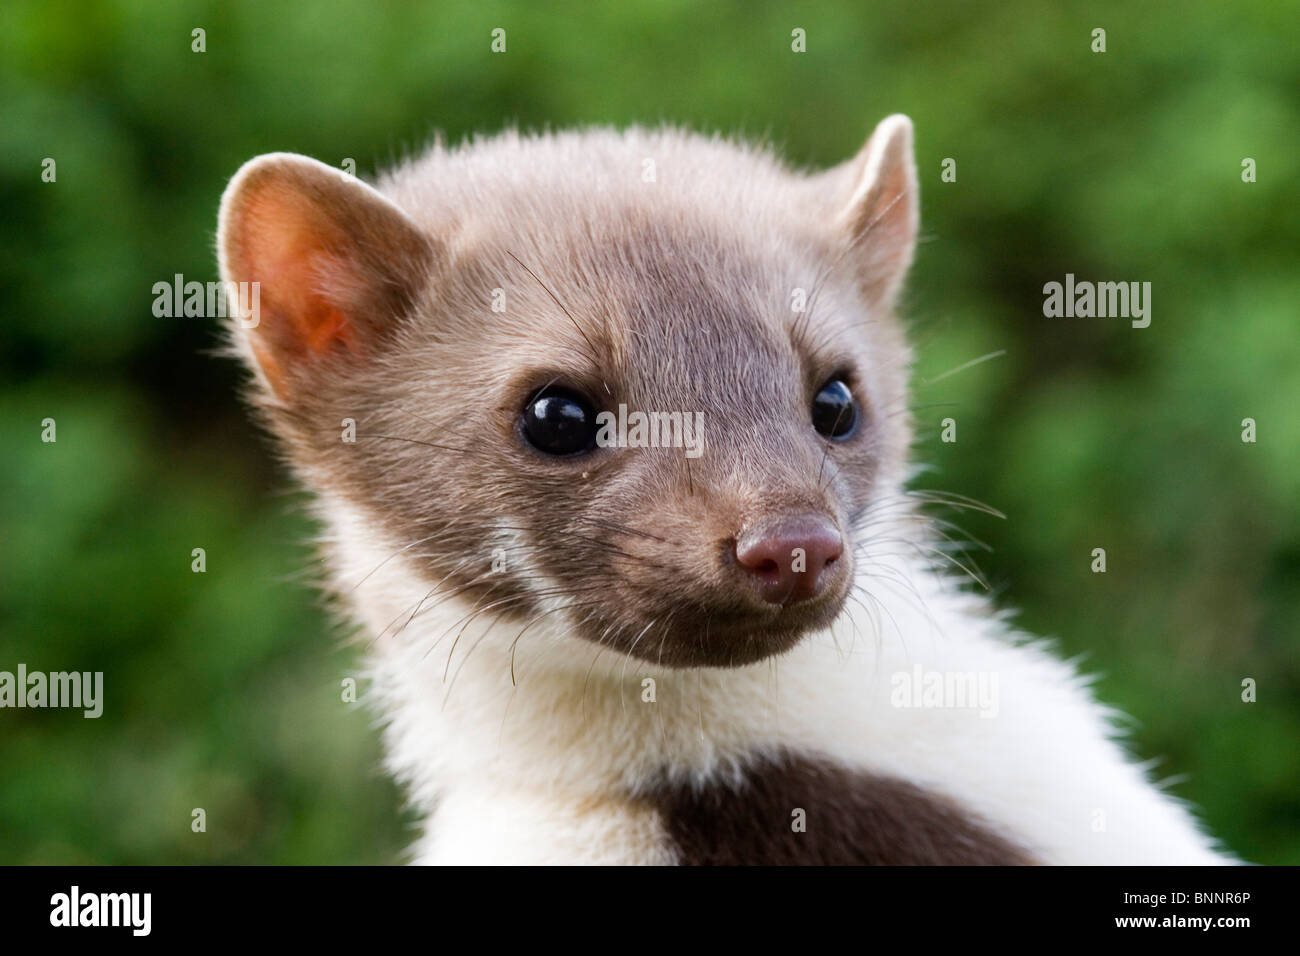 stone marten marten martes foina young animal fairy young new stock photo royalty free image. Black Bedroom Furniture Sets. Home Design Ideas